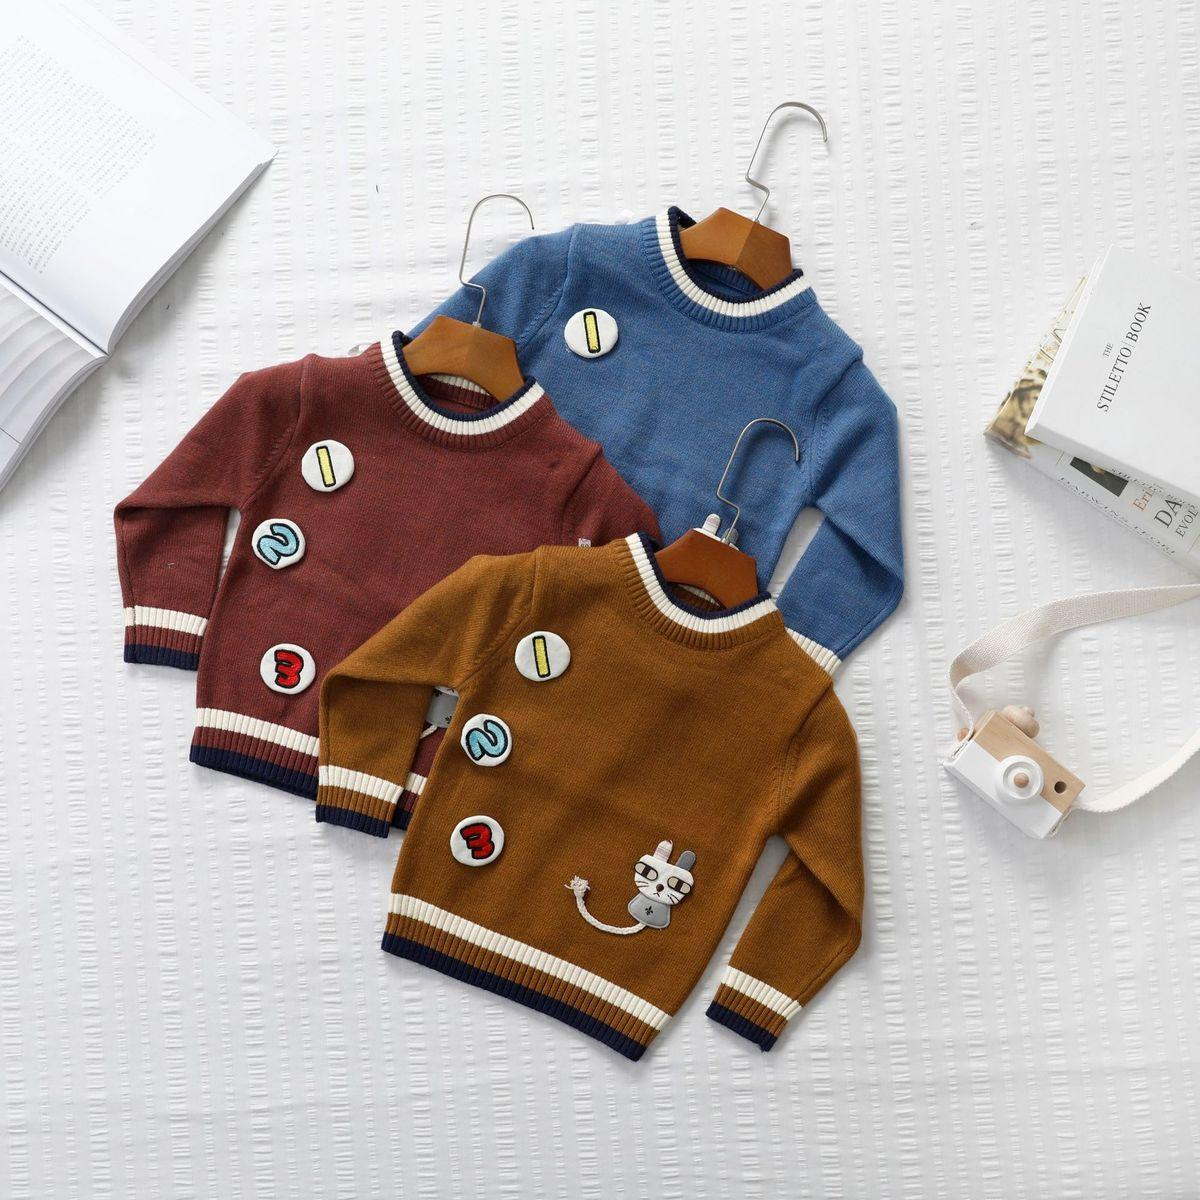 d4eeb33423a6d0 Autumn And Winter 2018 New Pattern Sweater Korean Digital Cartoon Round  Neck Small And Medium Children Tide Online with  24.32 Piece on Zjy5210 s  Store ...